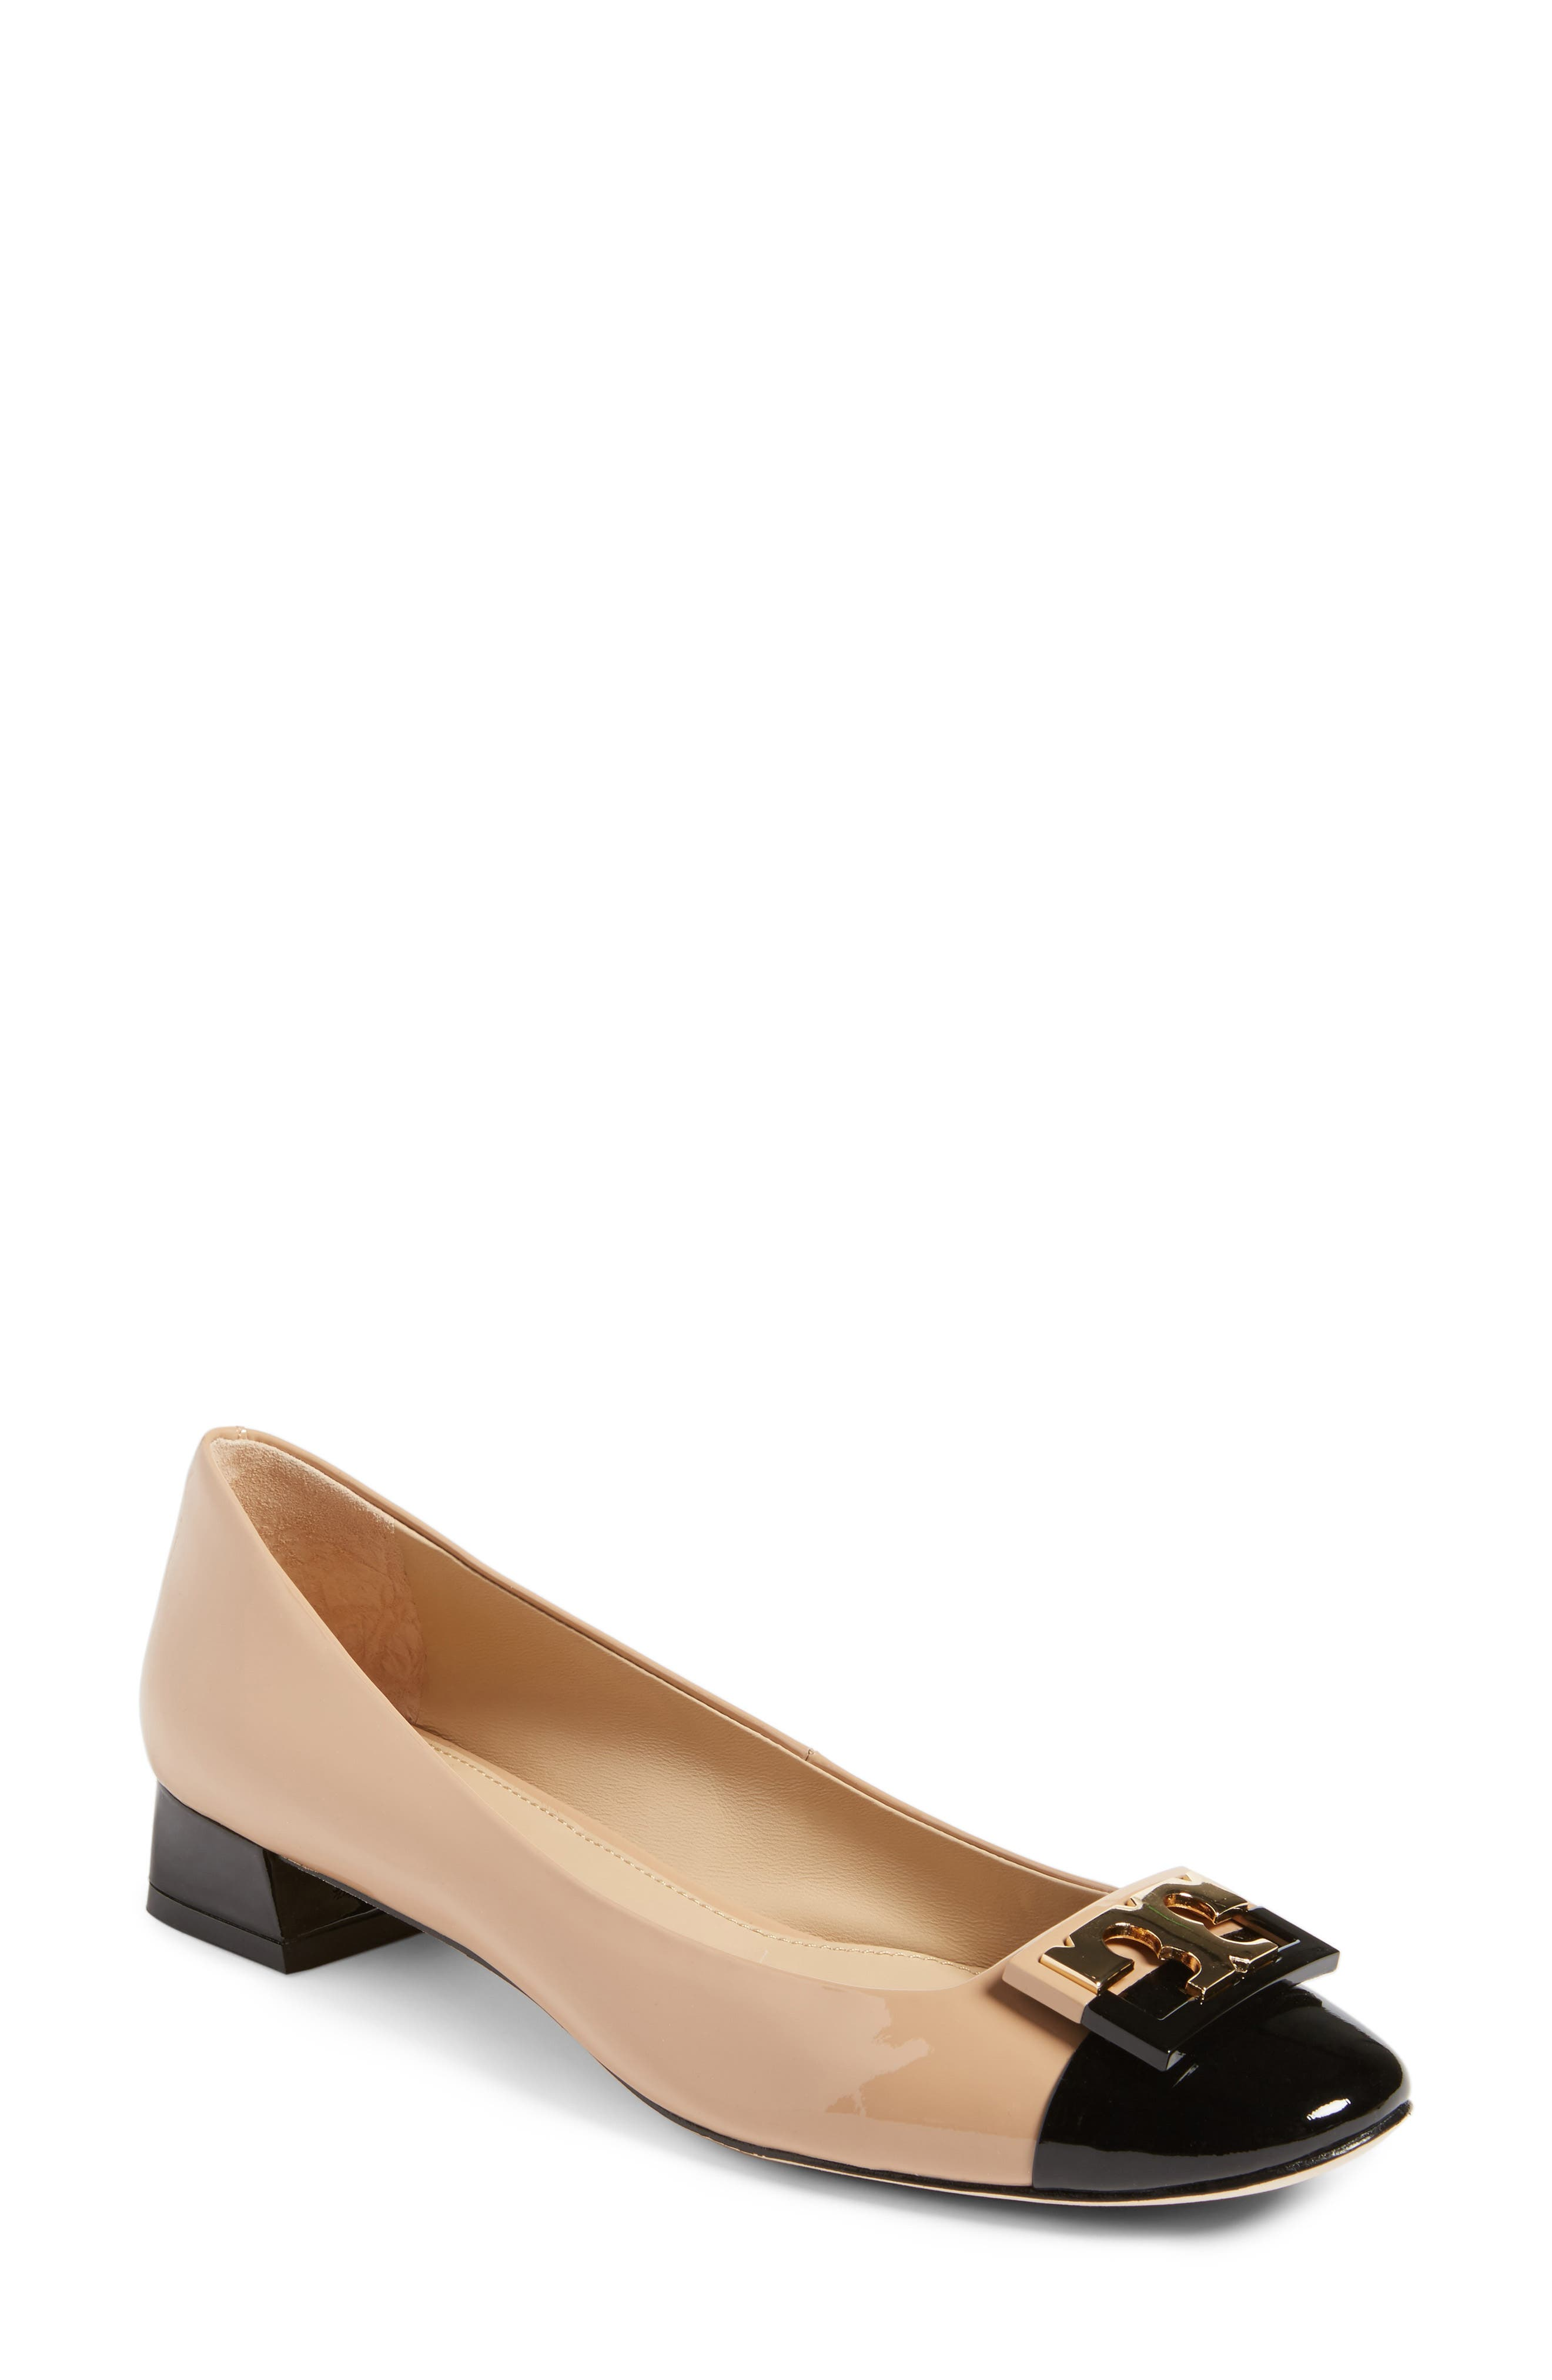 Gigi Pump,                         Main,                         color, Tory Beige/ Black